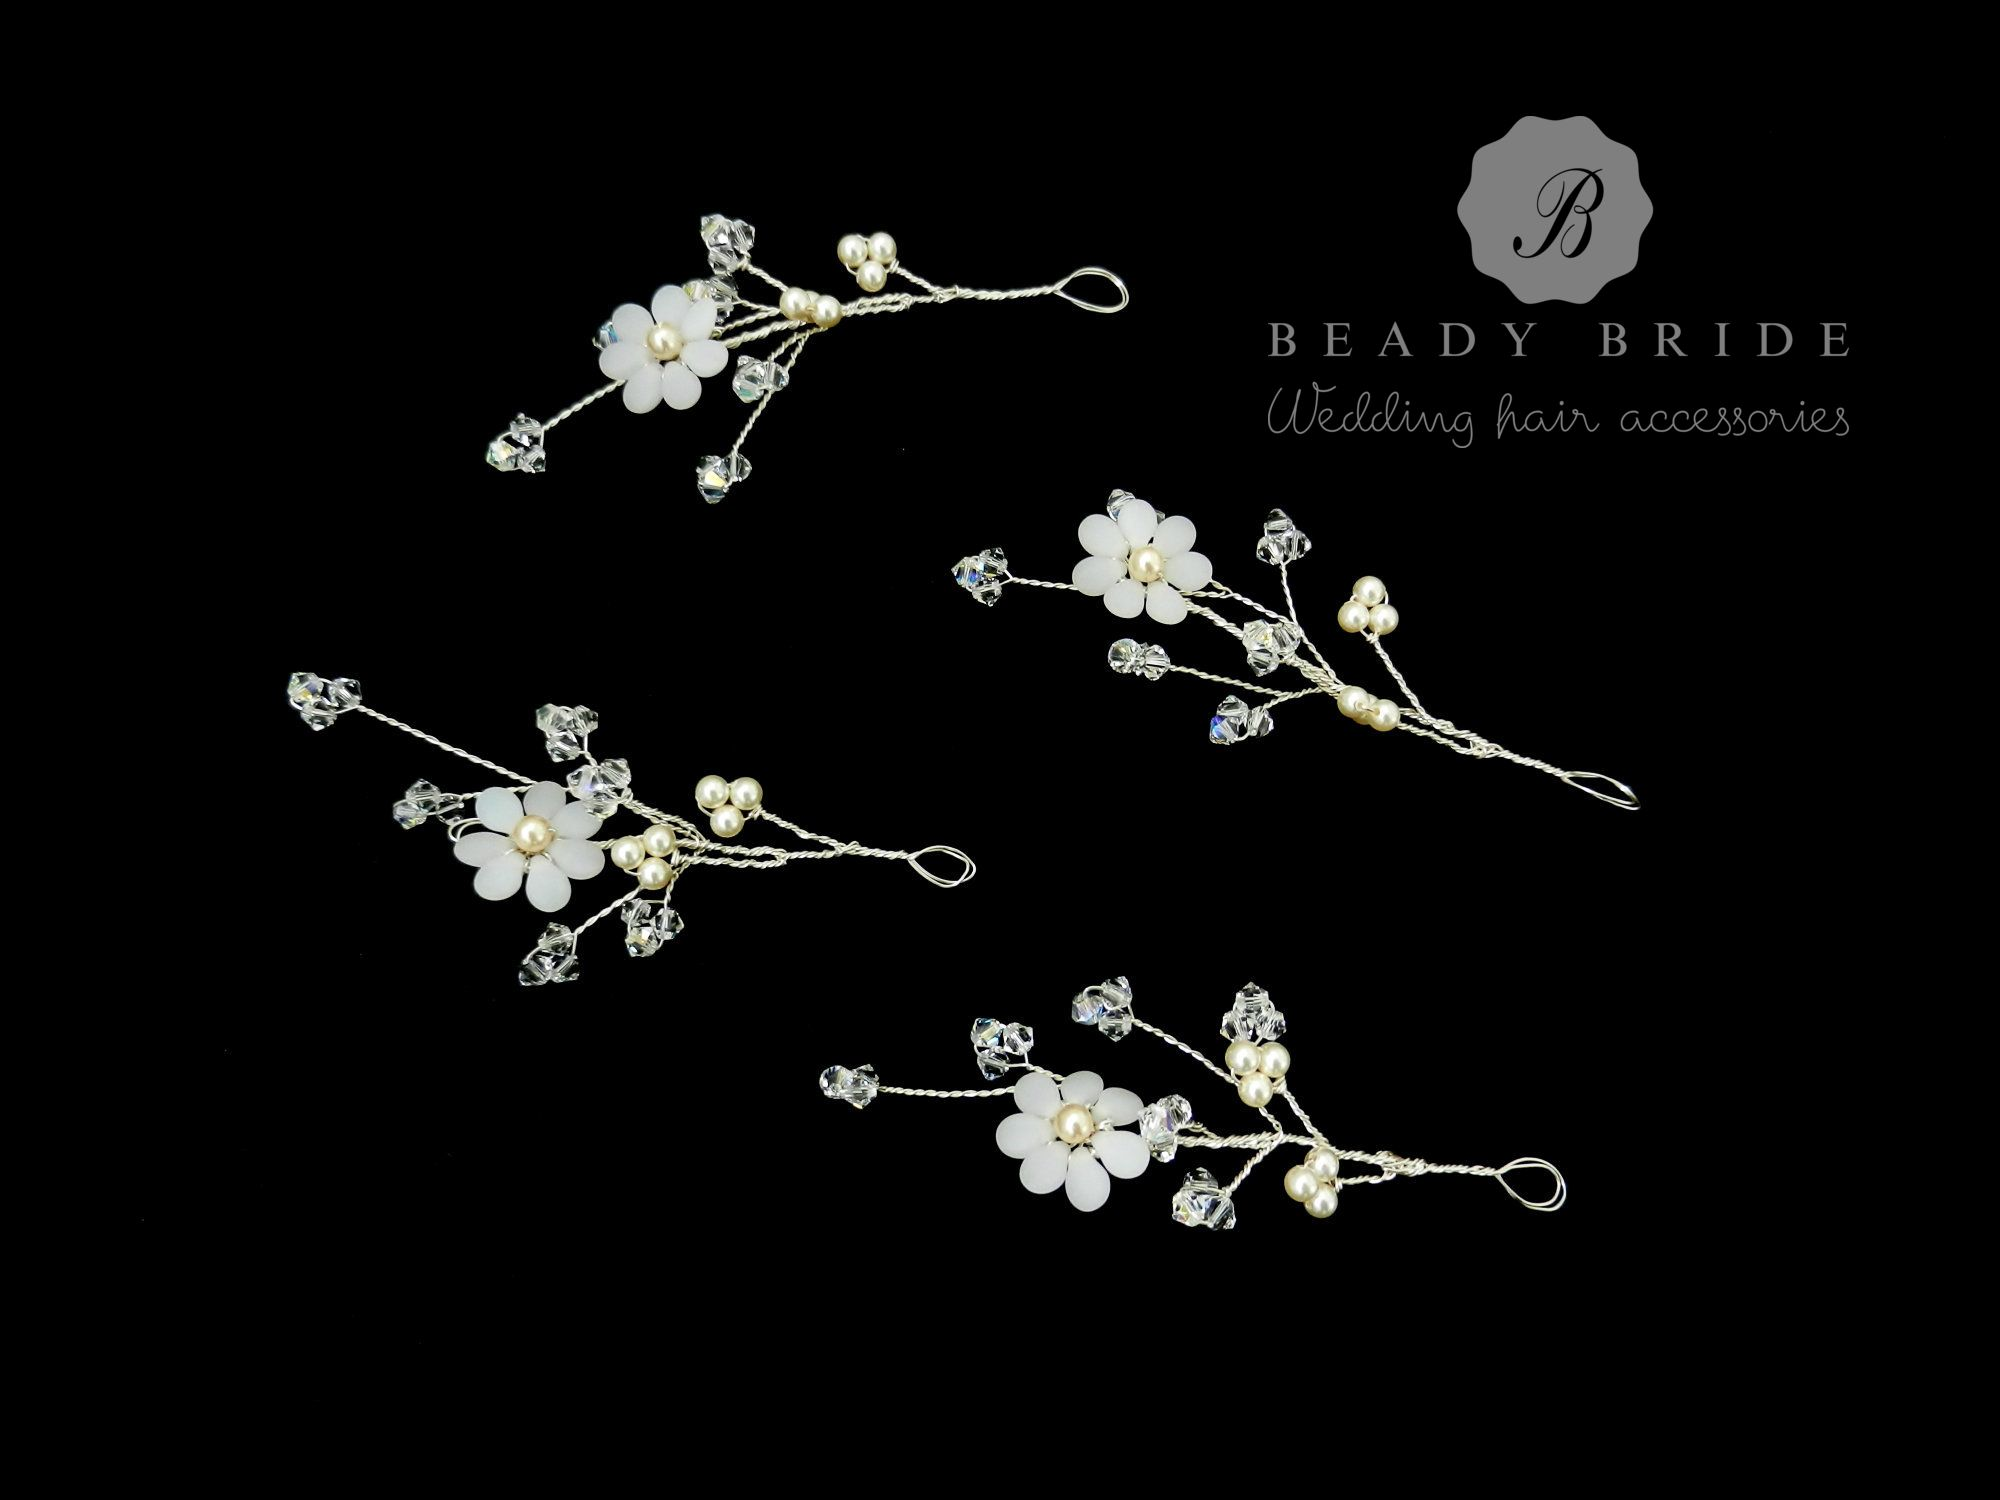 Lorraine-wedding-hair-pin-accessory-by Beady Bride-UK  (1)